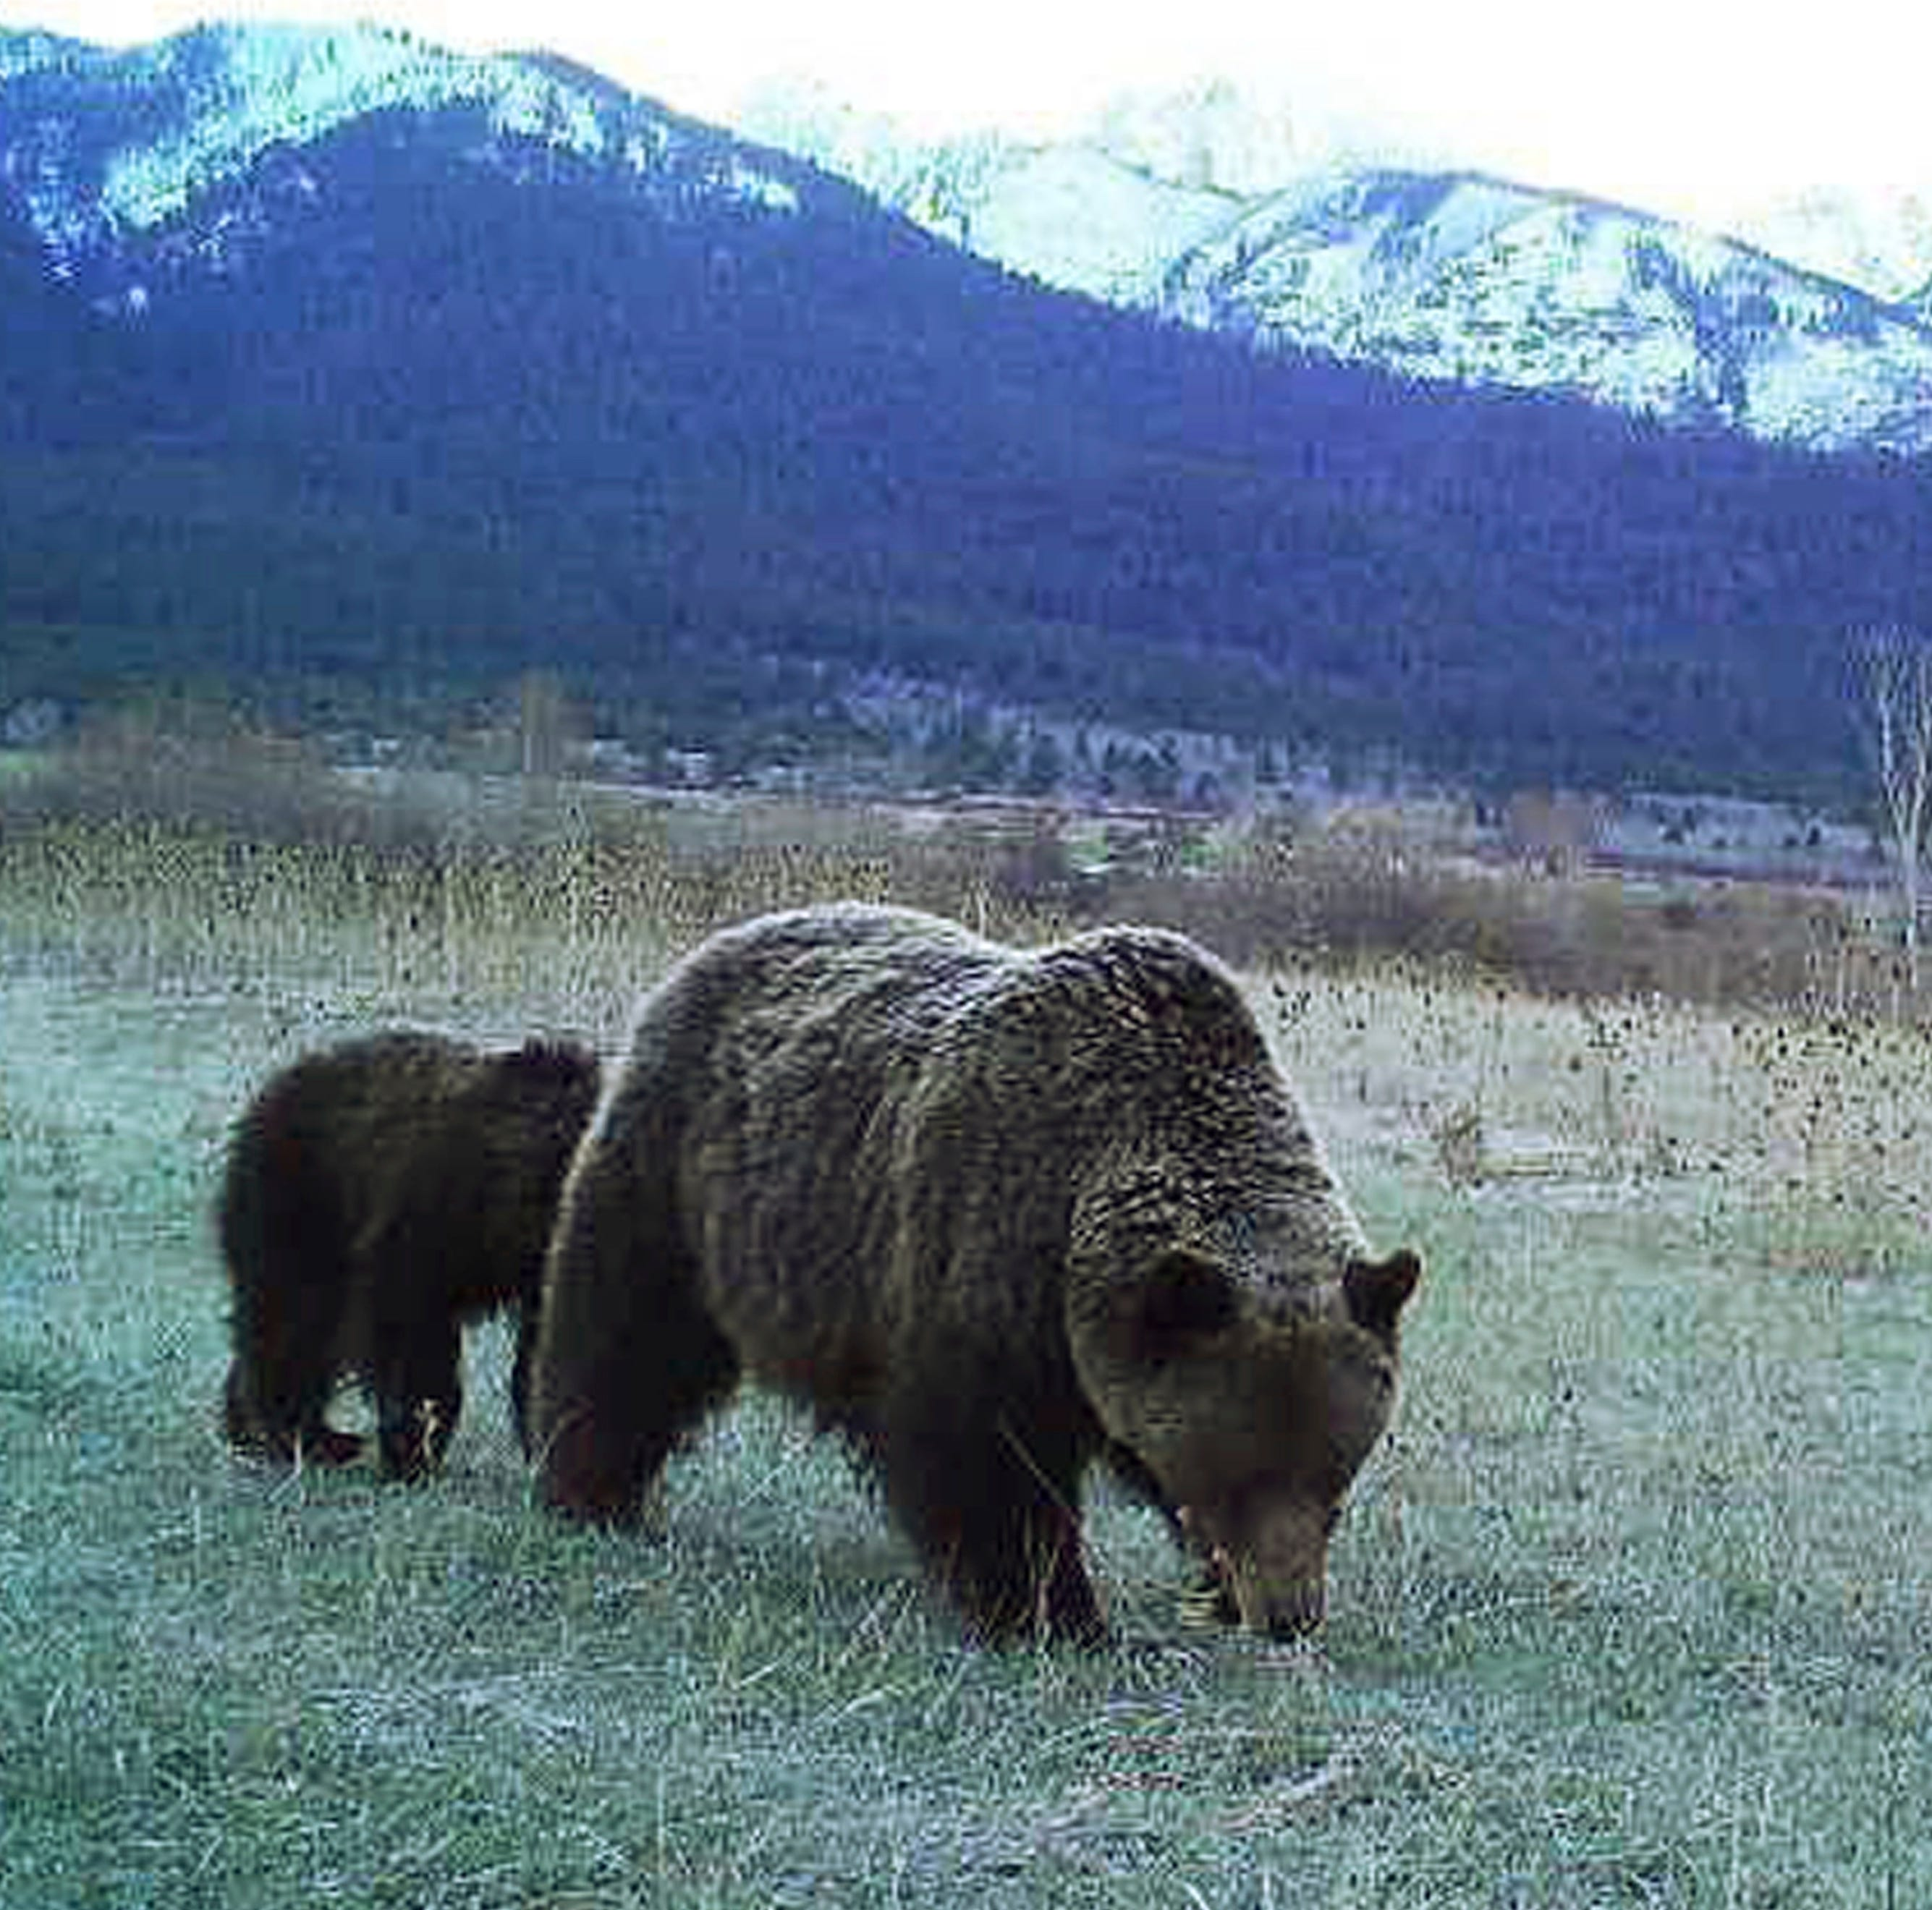 Grizzly attacks bow hunter near Gardiner